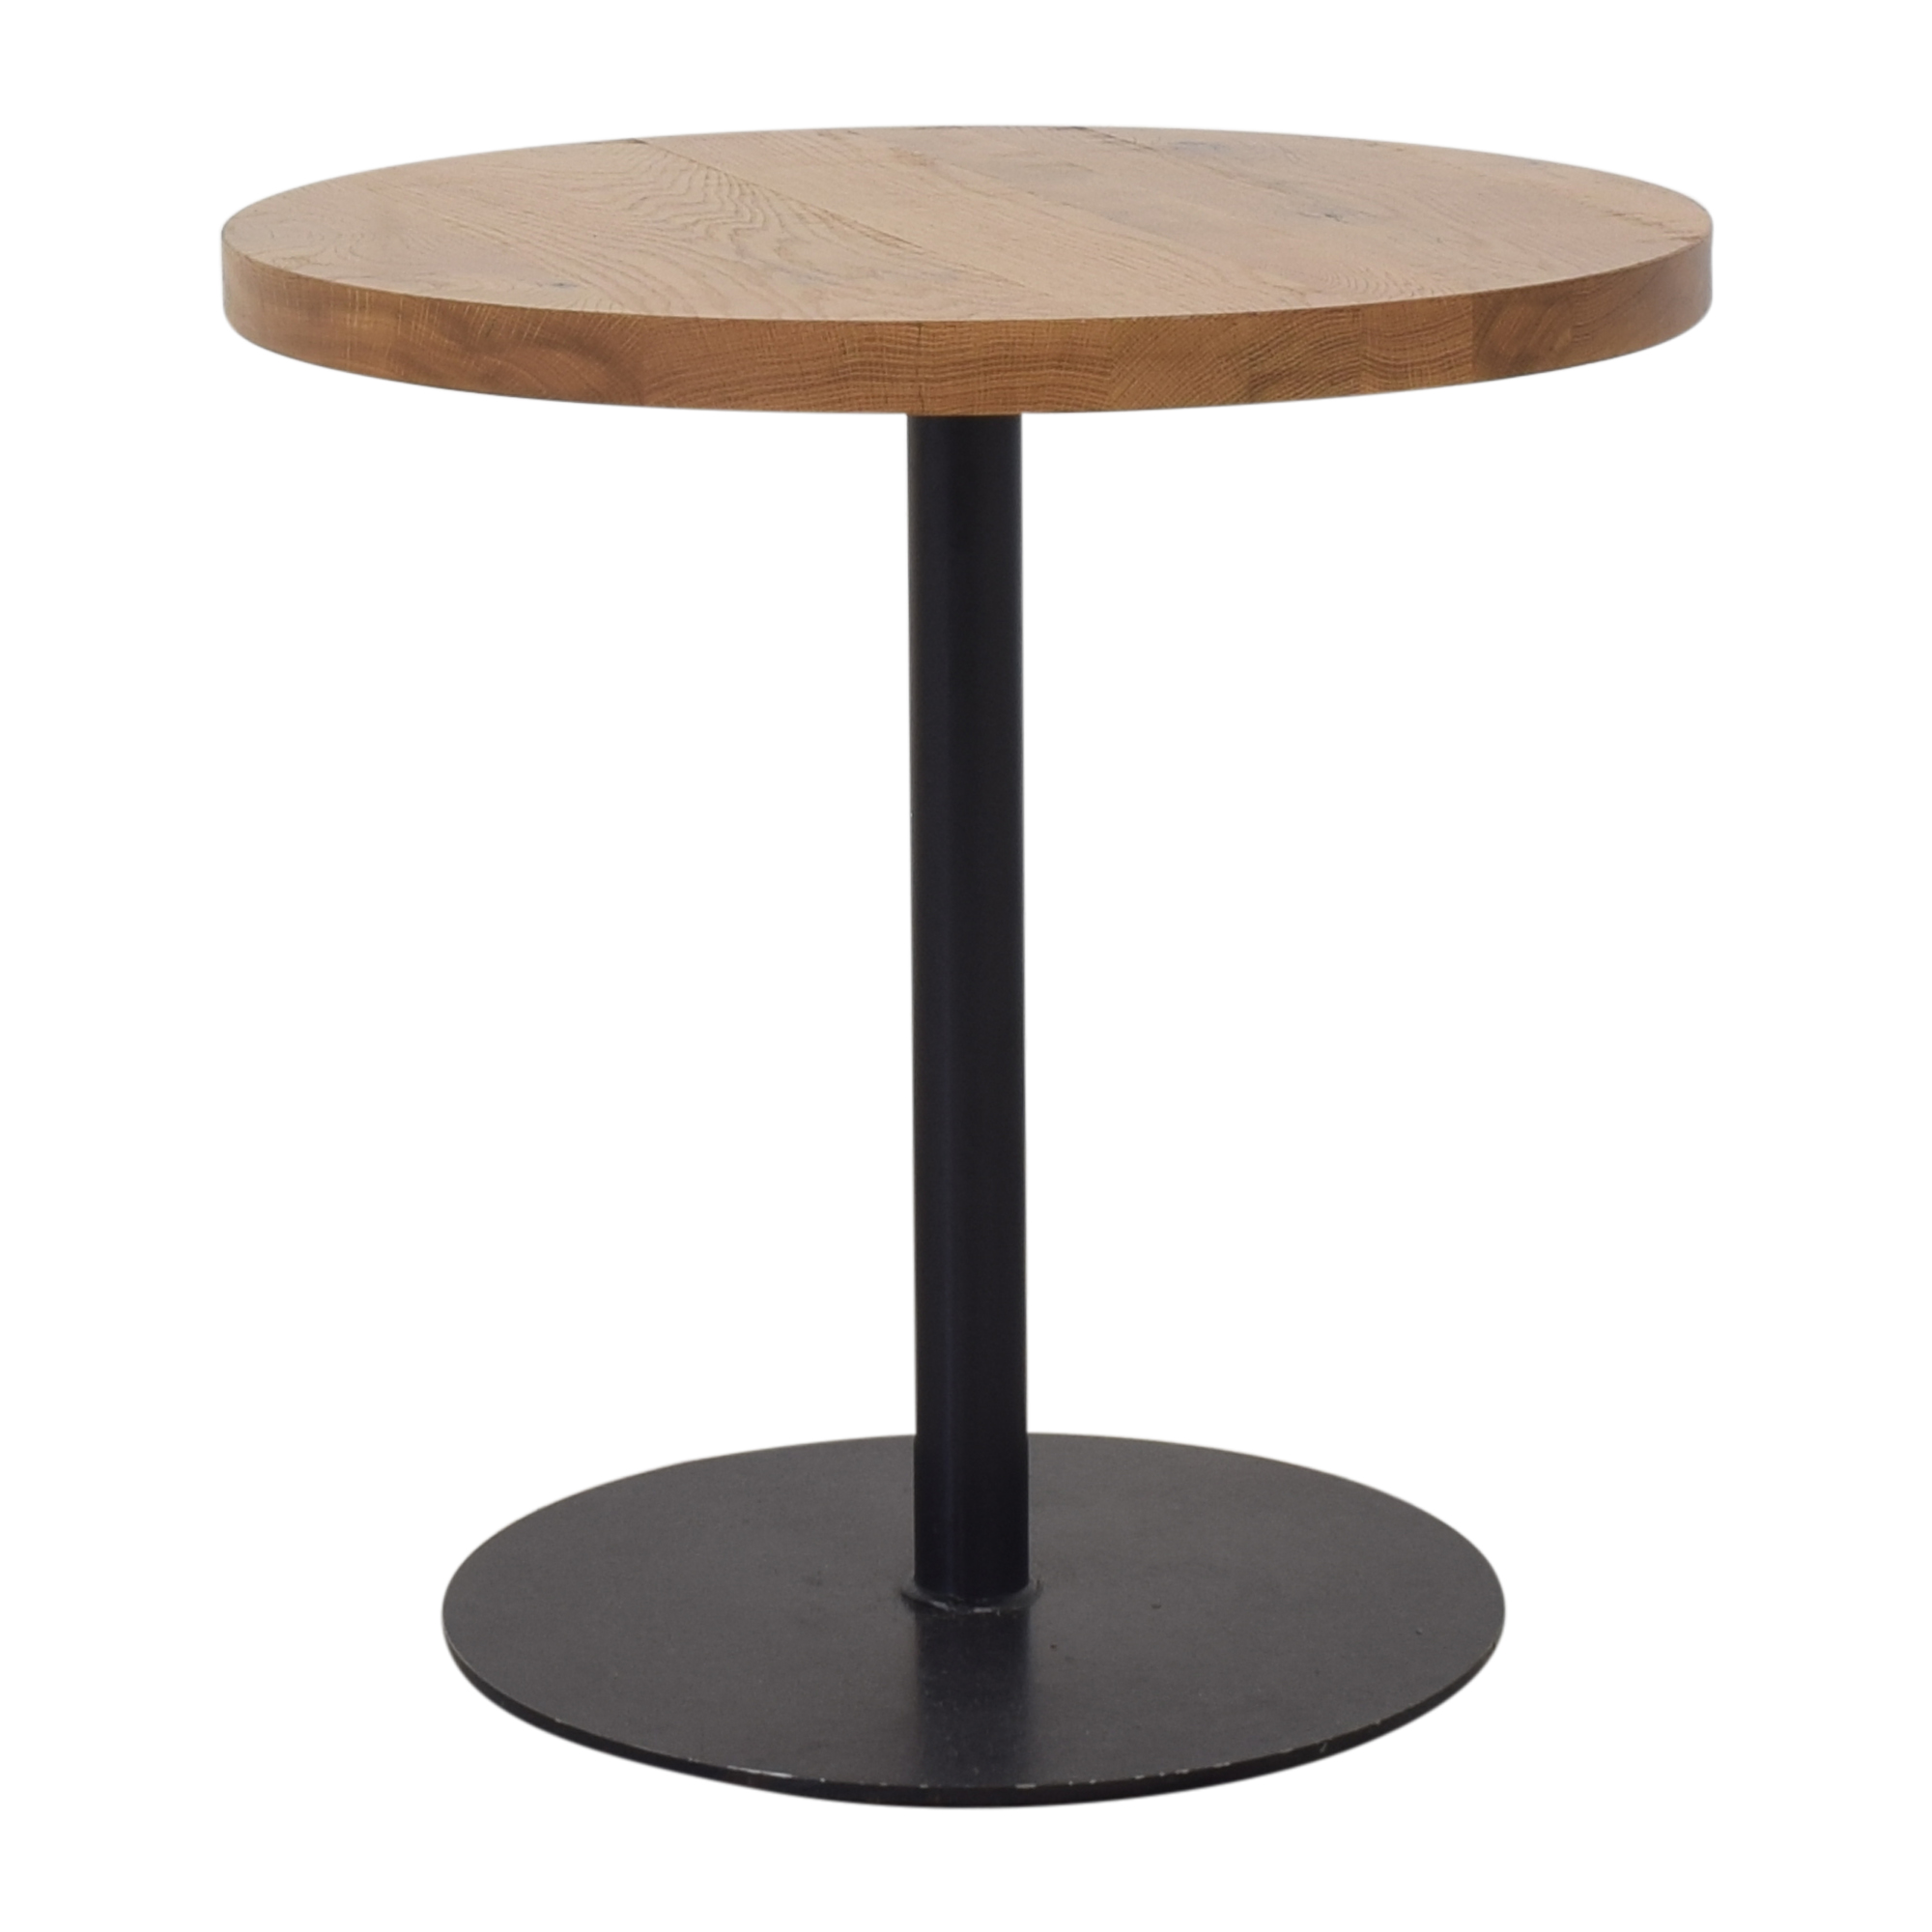 buy Crow Works Crow Works Round Base Table online